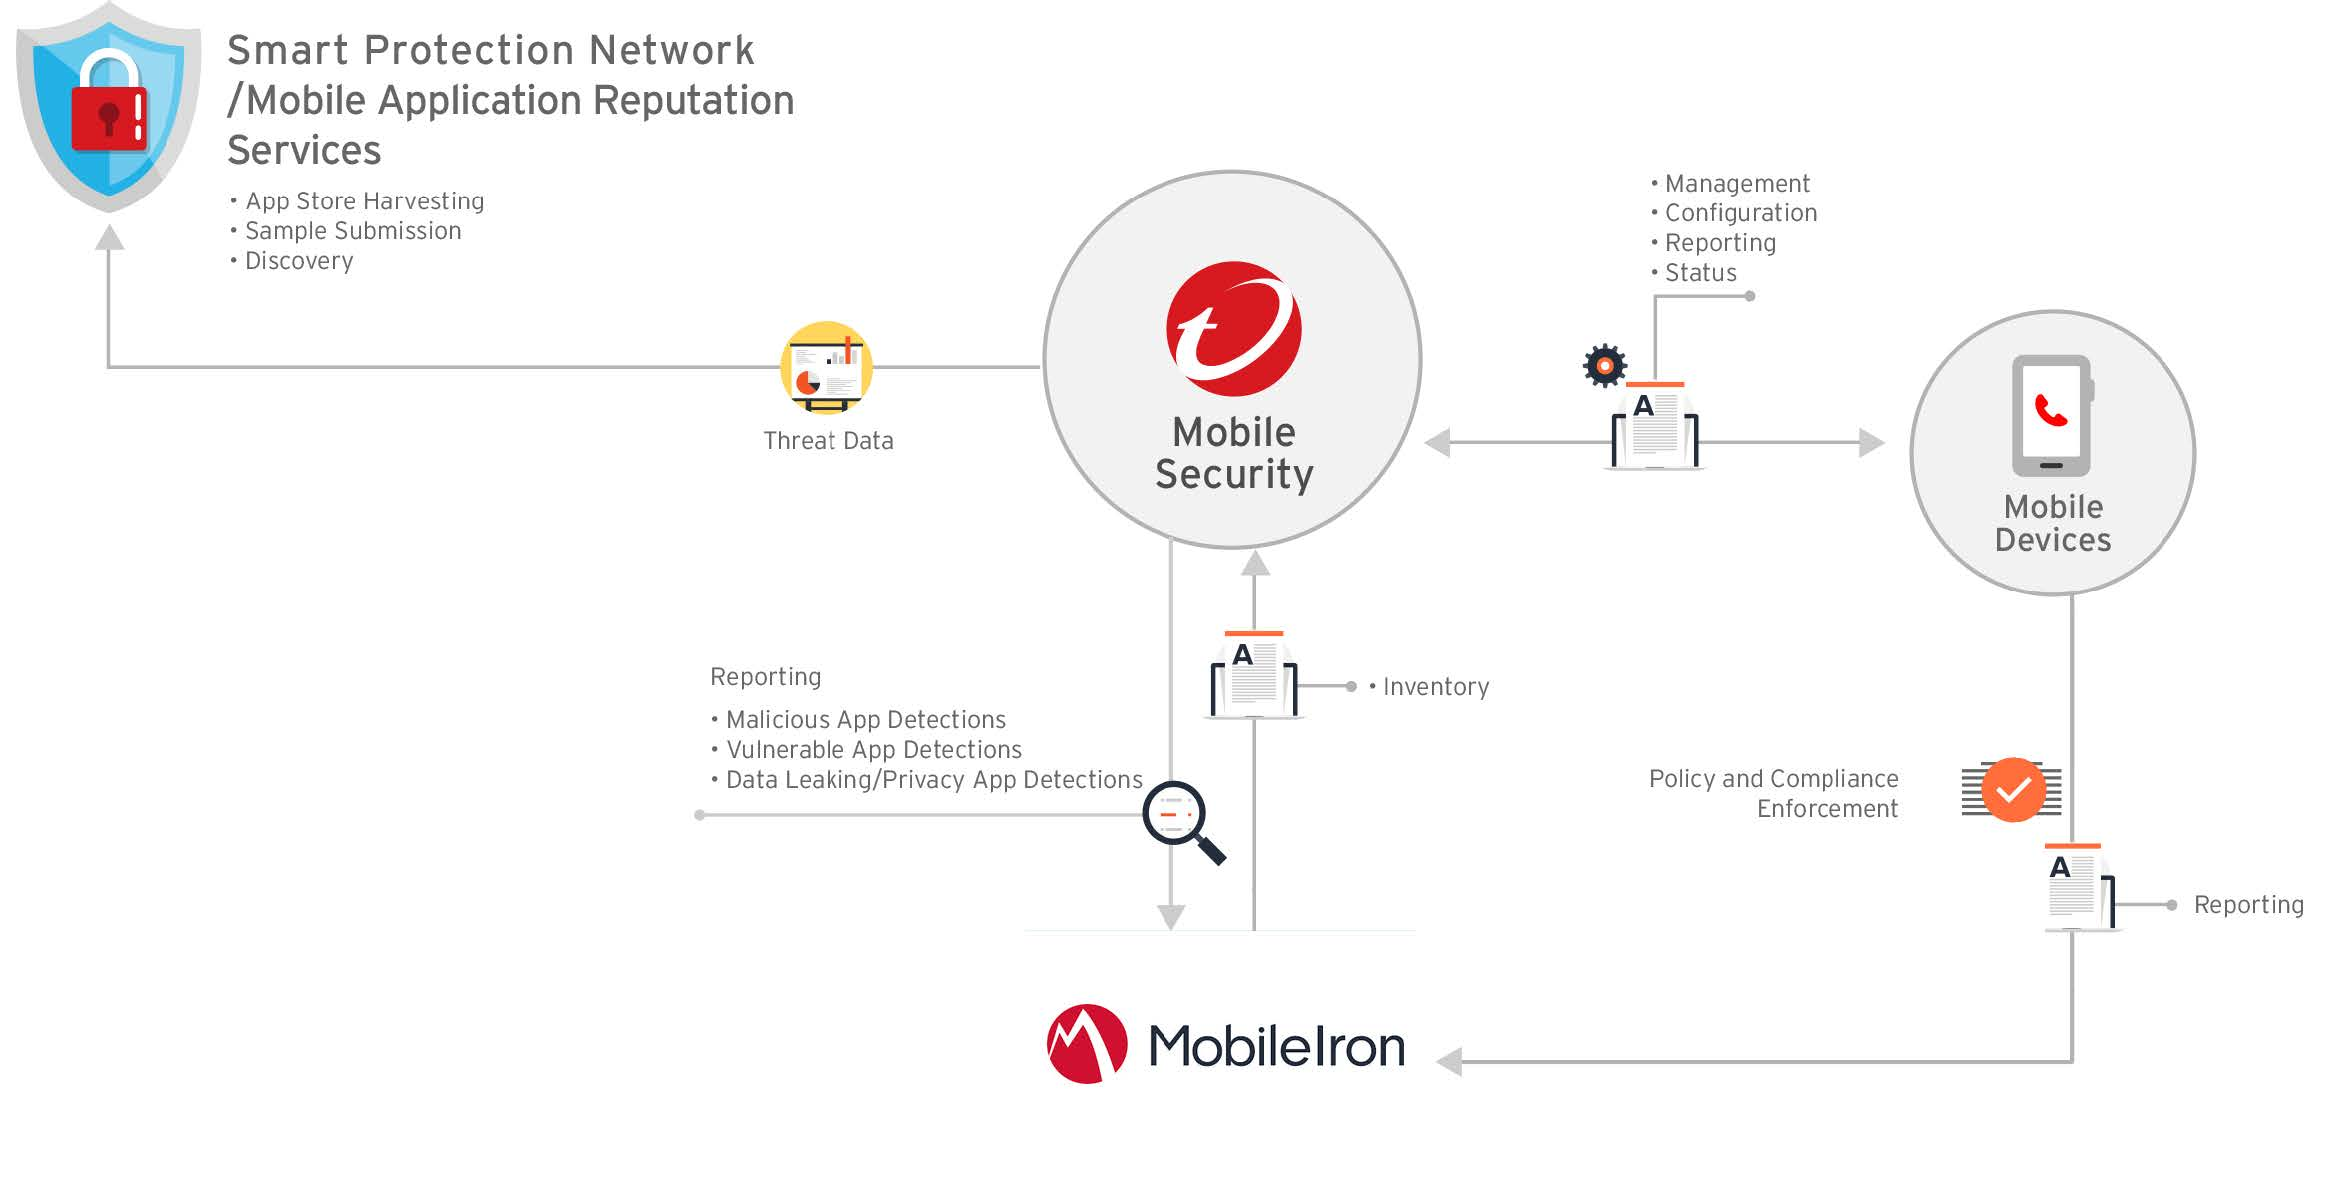 Mobileiron Integration Architecture